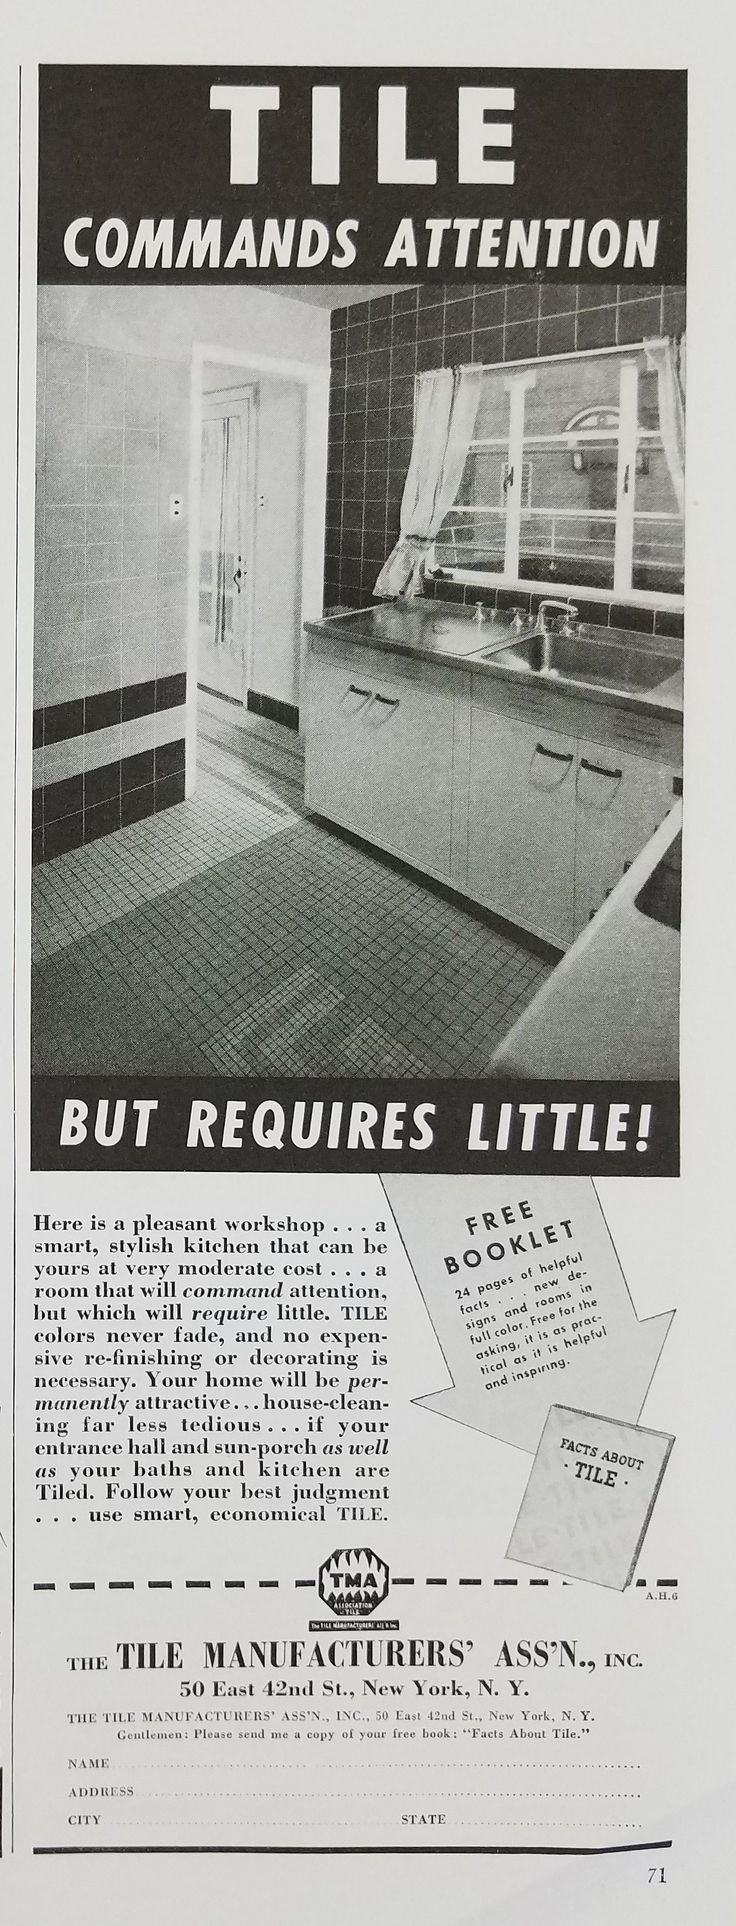 Best 25 tile manufacturers ideas on pinterest floor decor and 1940 tile manufacturers association vintage ad kitchen dailygadgetfo Image collections